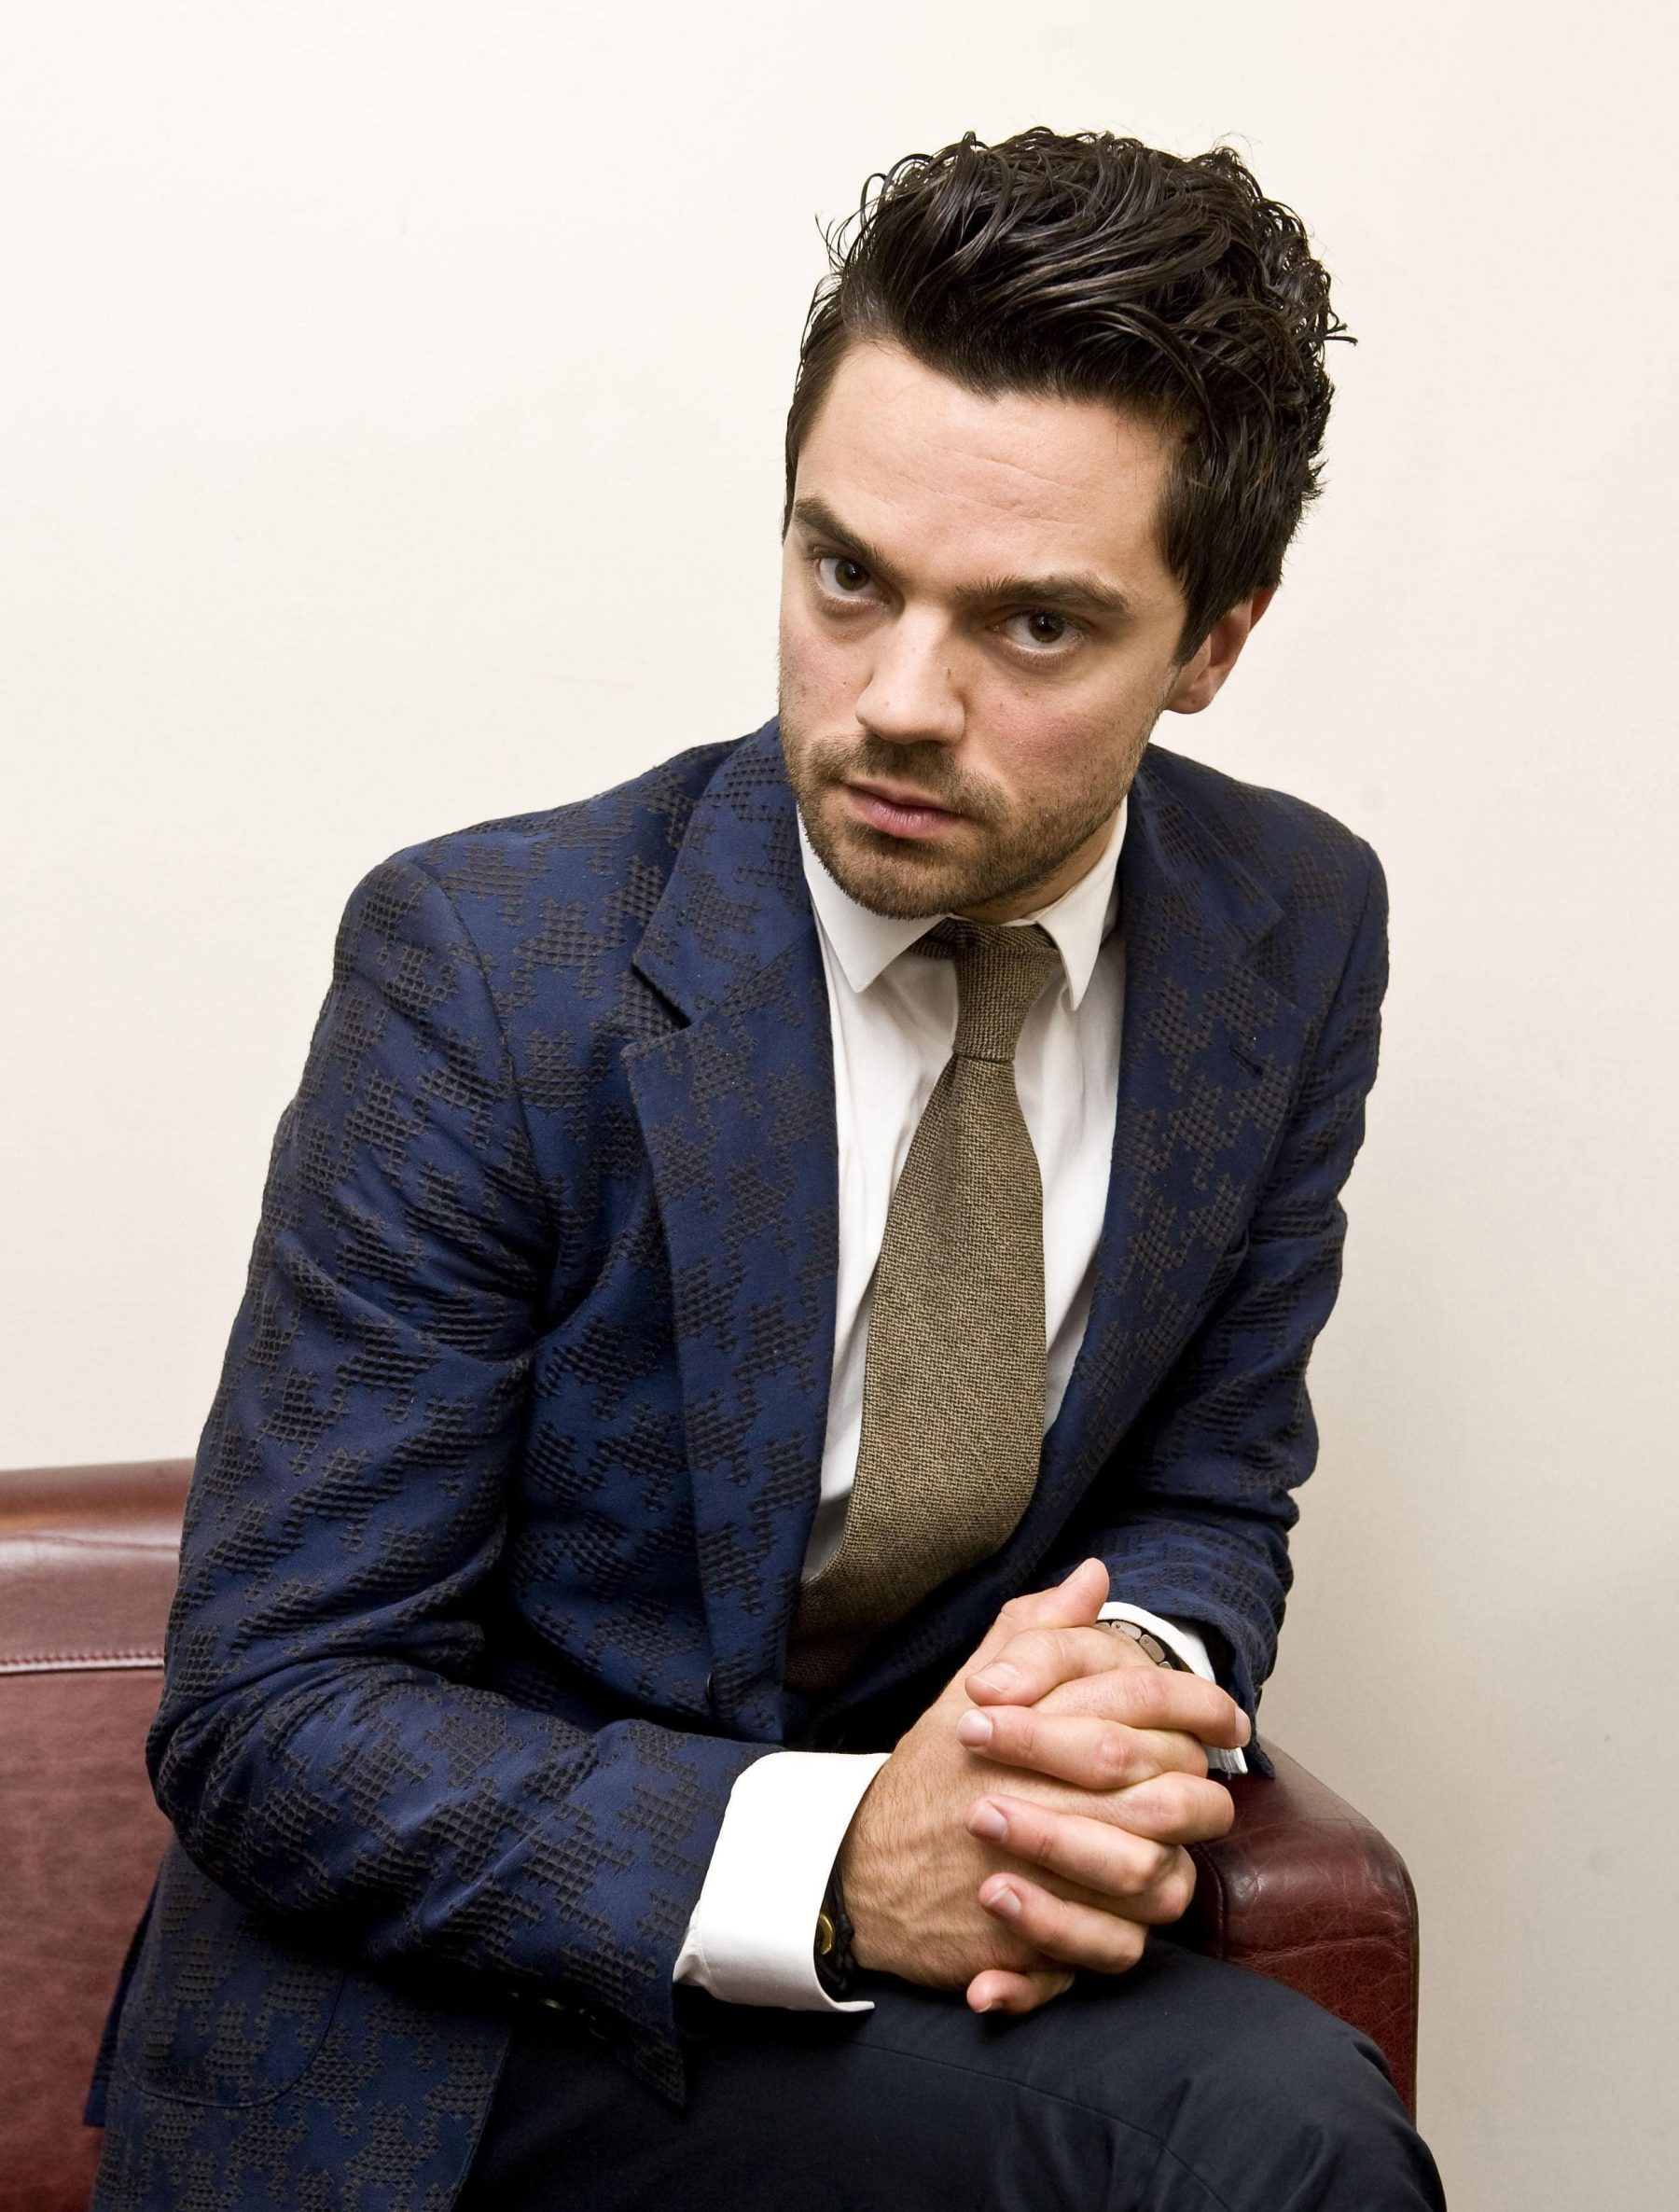 Discussion on this topic: Tory Mussett, dominic-cooper-born-1978/